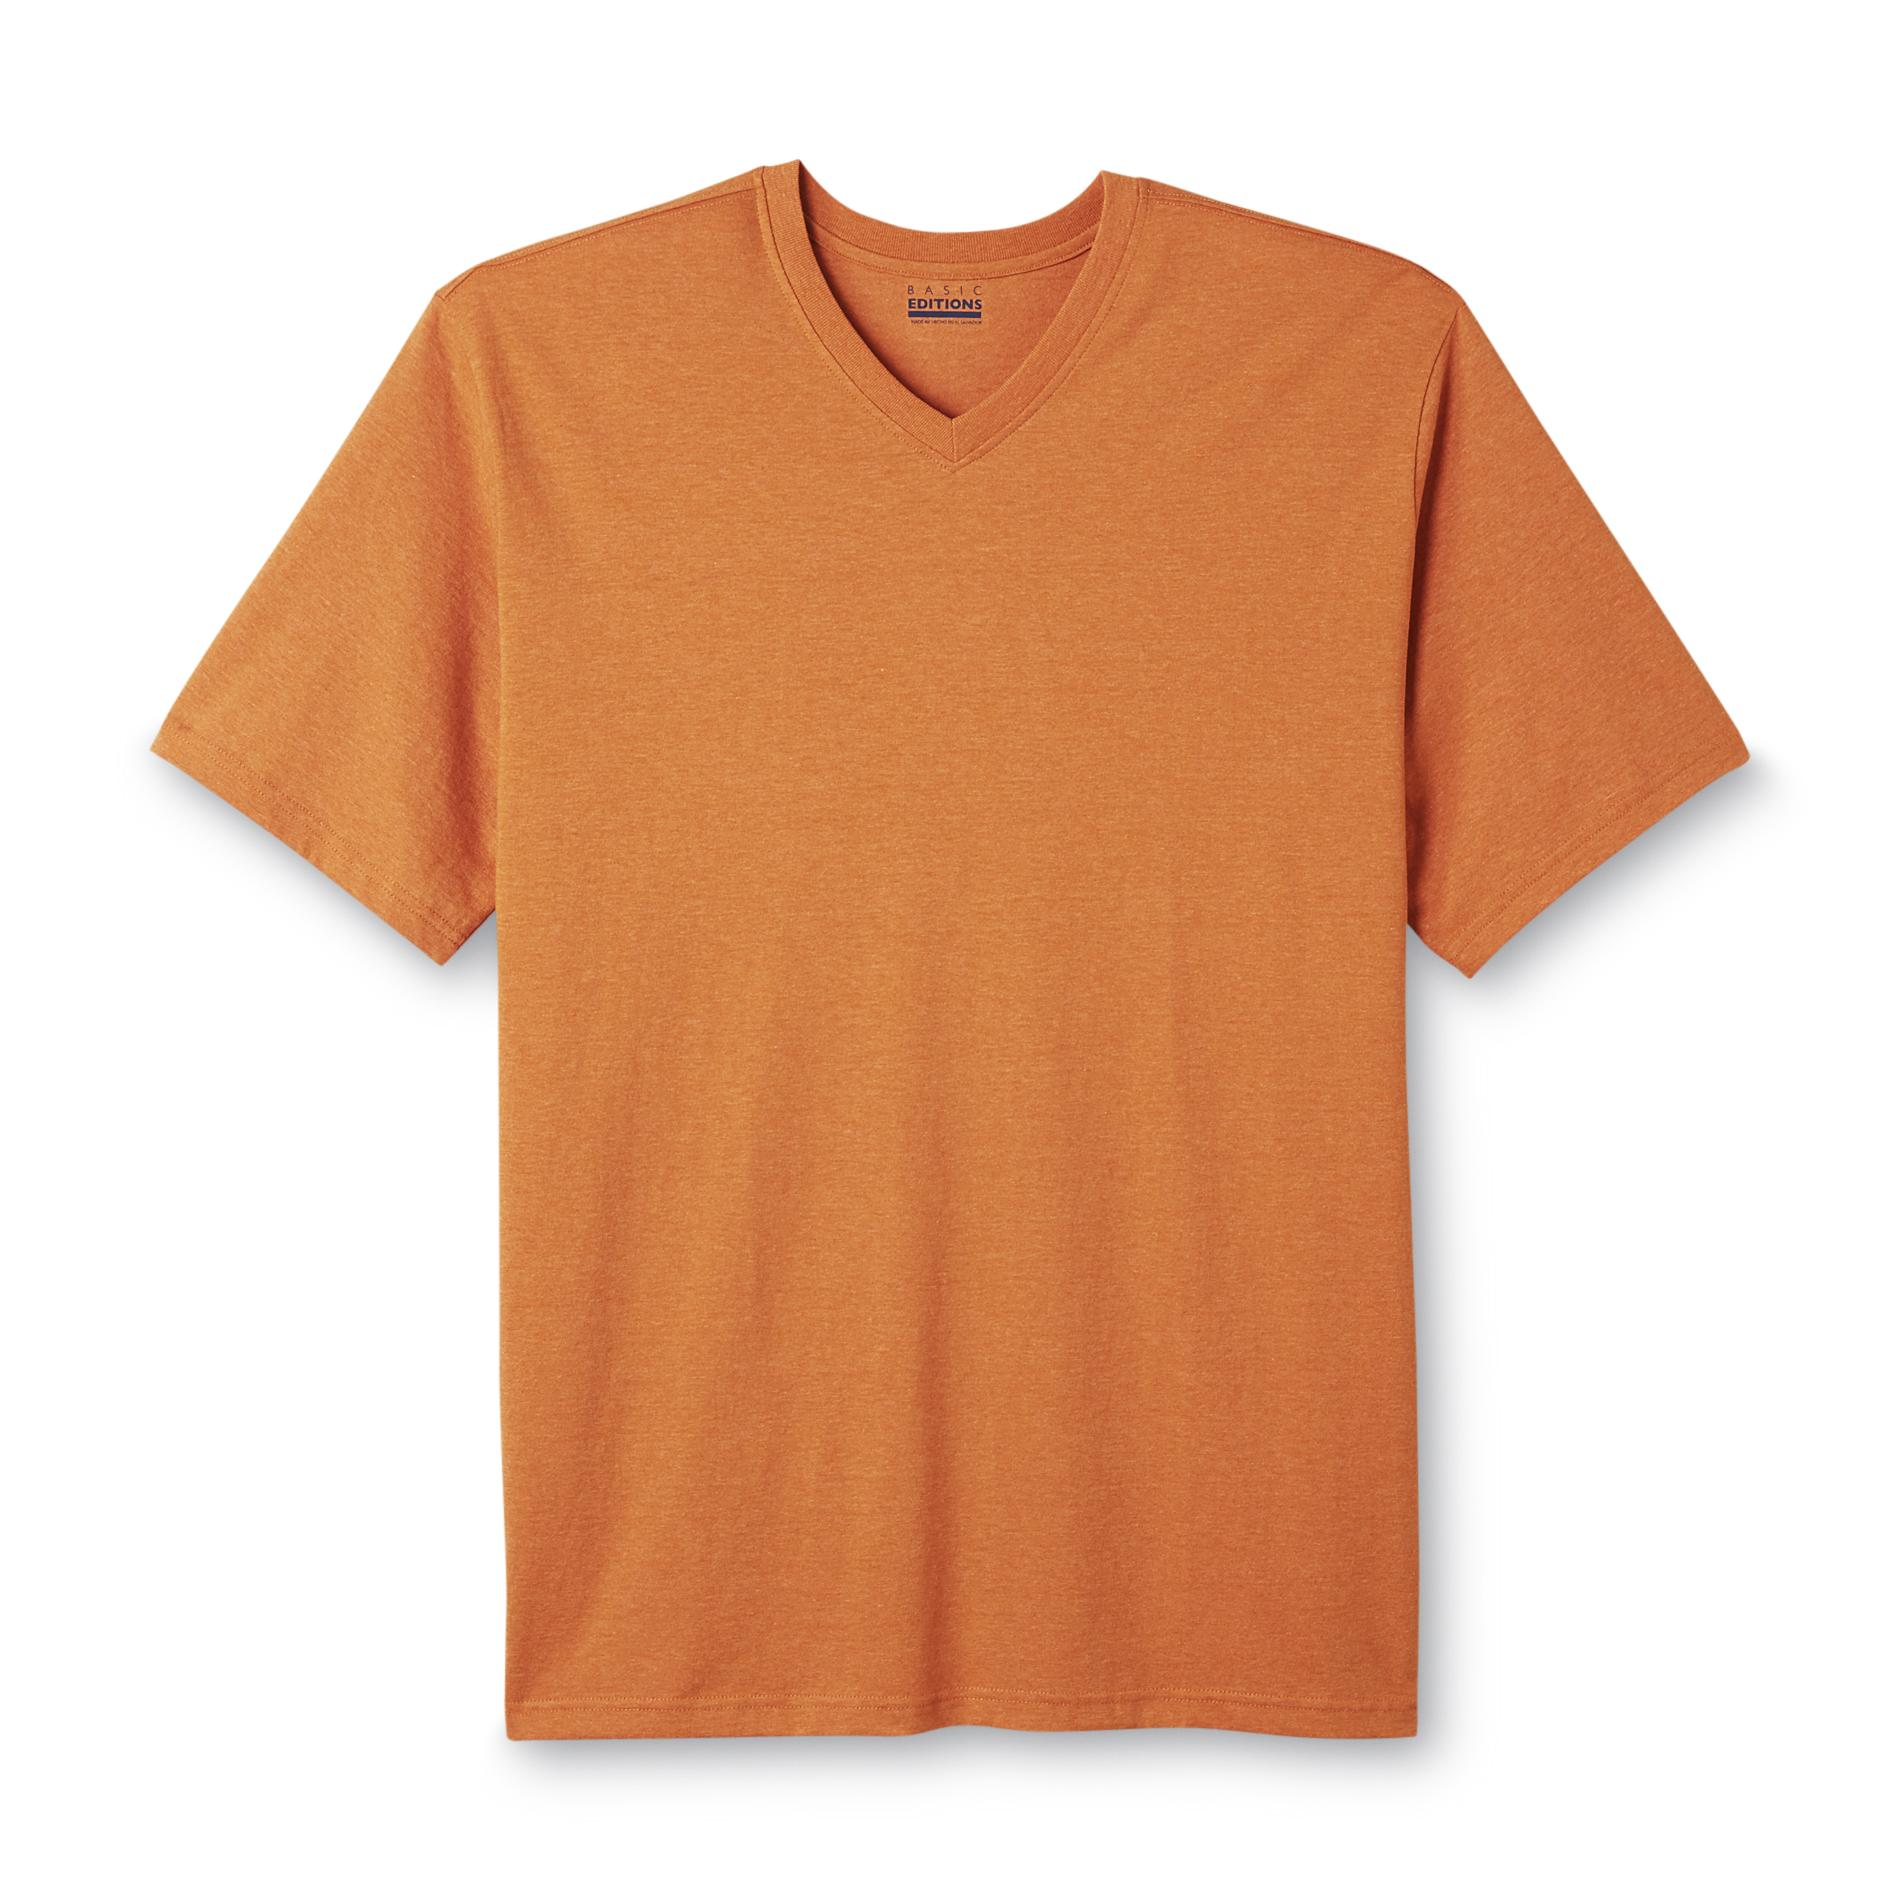 Basic Editions Men's Big & Tall V-Neck T-Shirt at Kmart.com